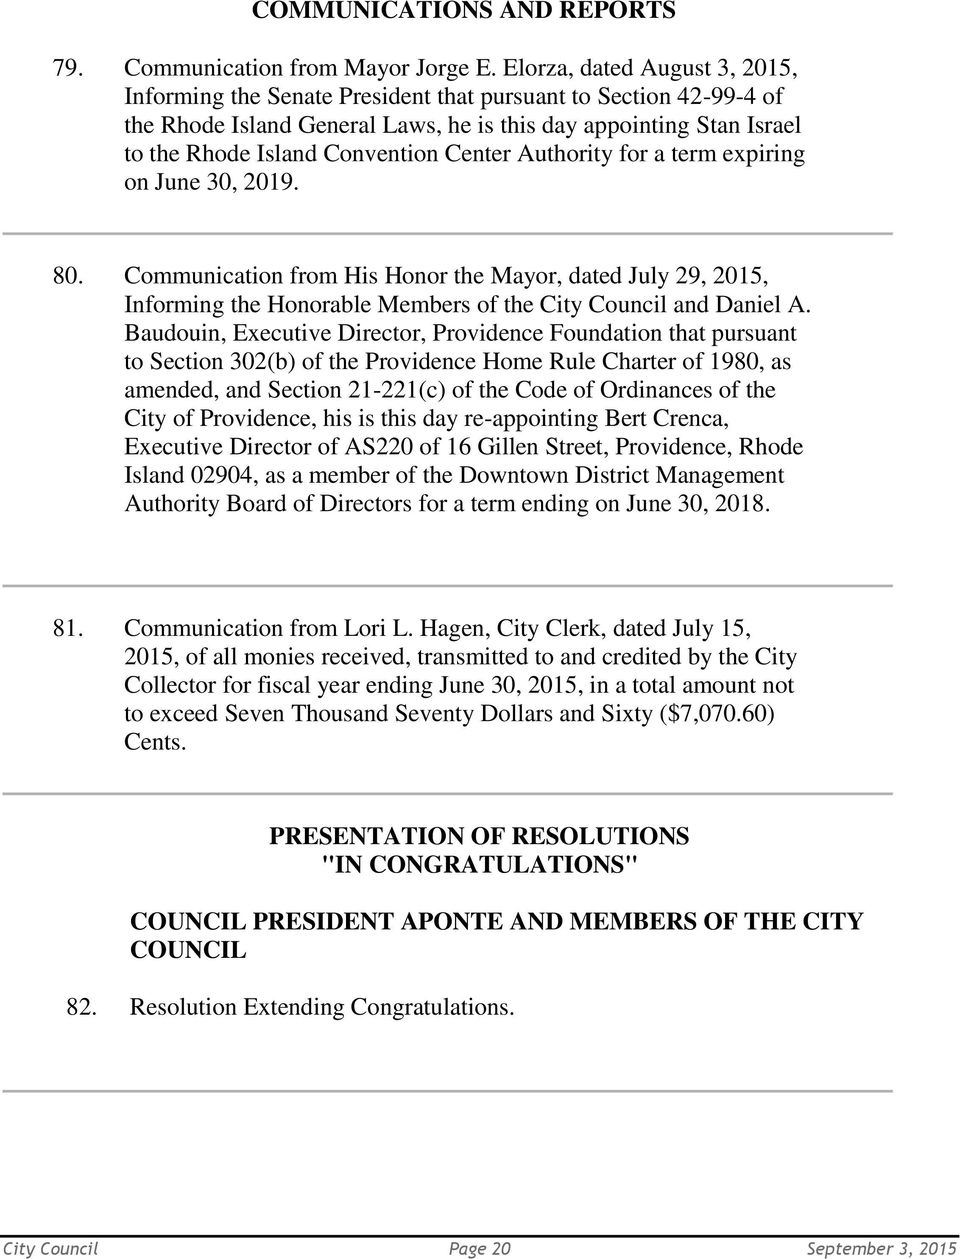 Center Authority for a term expiring on June 30, 2019. 80. Communication from His Honor the Mayor, dated July 29, 2015, Informing the Honorable Members of the City Council and Daniel A.